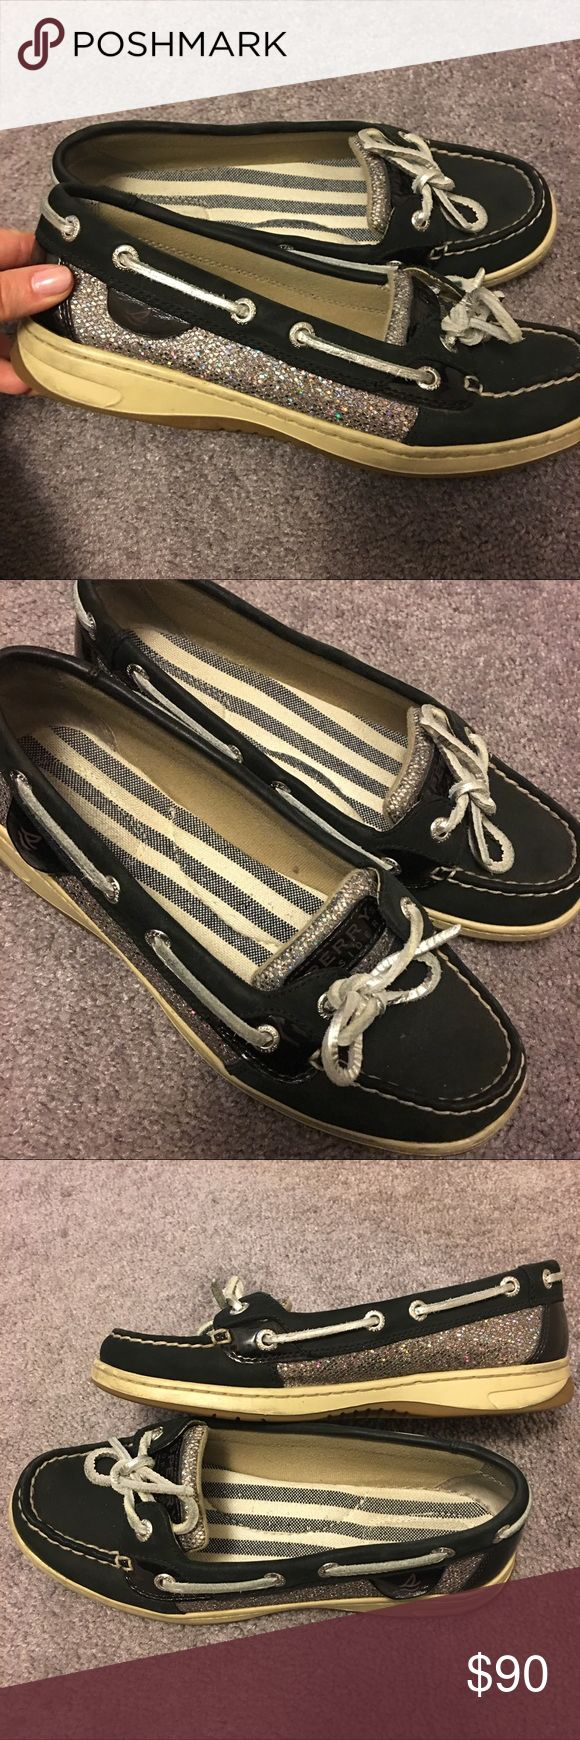 """🎉BOGO FREE OR 25% OFF BUNDLES🎉 Black Sperries Have only been work two to three times, they are in great condition. Absolutely beautiful design with sparkling sides and black. Silver laces. Size 6.5 and true to size. I believe they are the """"angelfish"""" style. I bought these from Sperry Top-sider at full price and still  have the box (I think.) Respectful offers only please. Starting full time work where I need to wear dress clothes and unfortunately won't be wearing these much! Sperry…"""